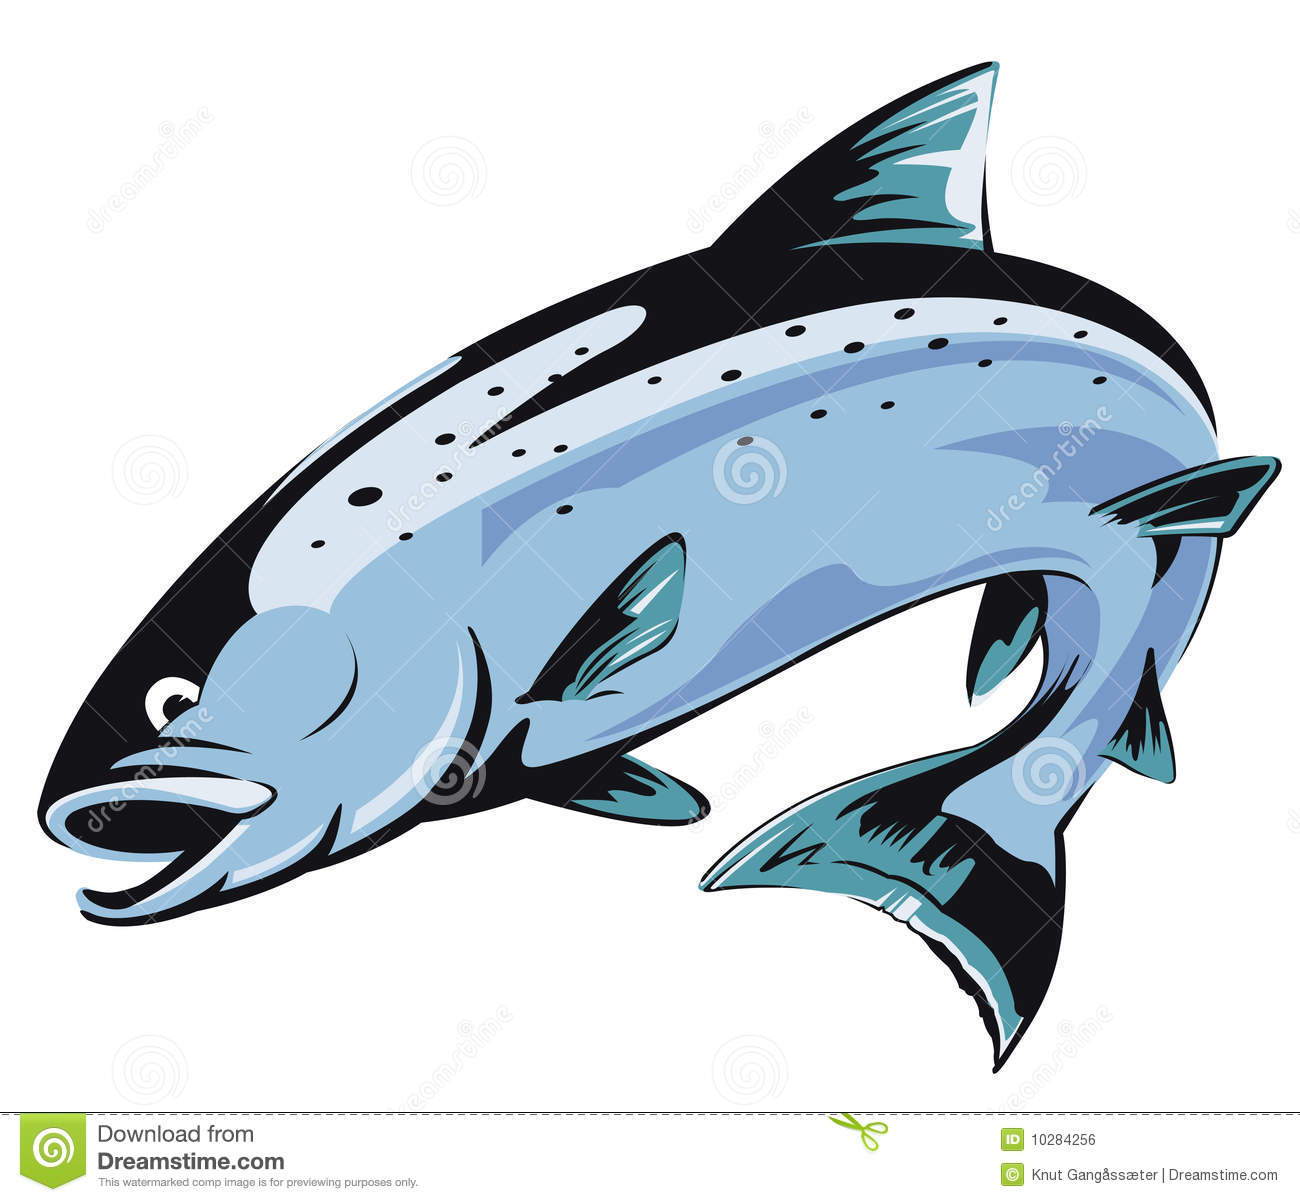 Salmon clipart #16, Download drawings